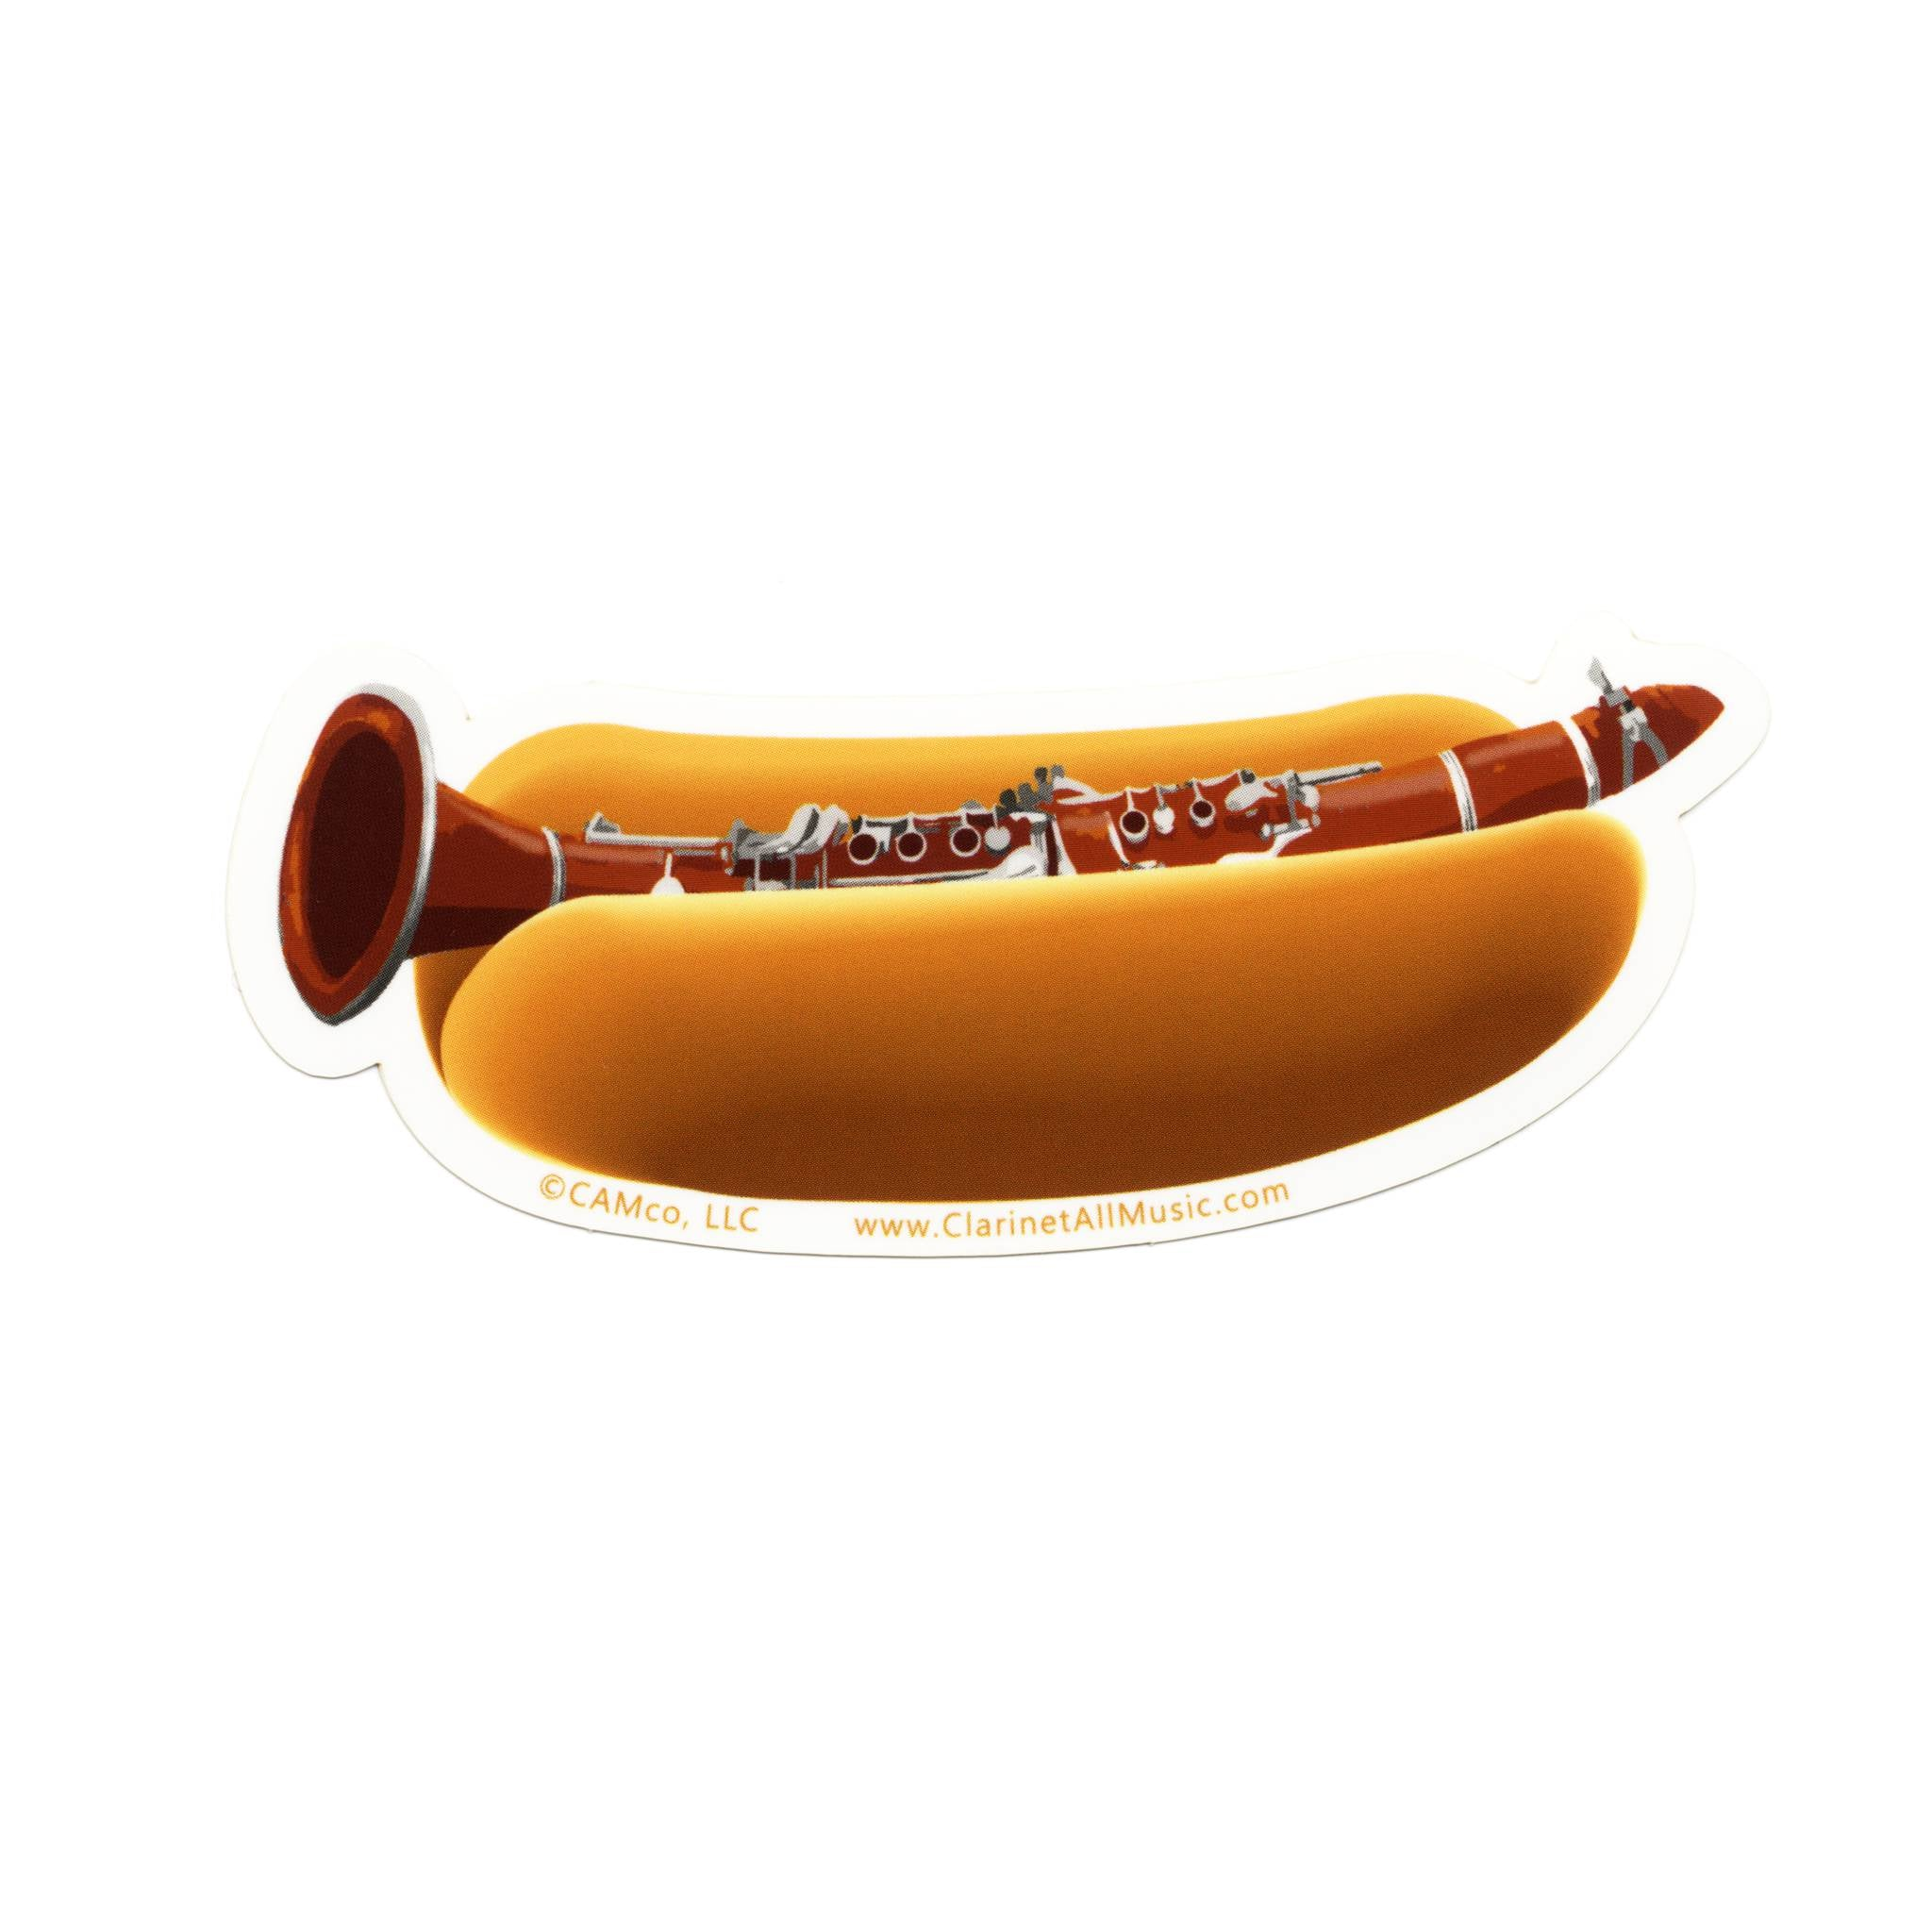 Clarinet in hotdog bun vinyl sticker